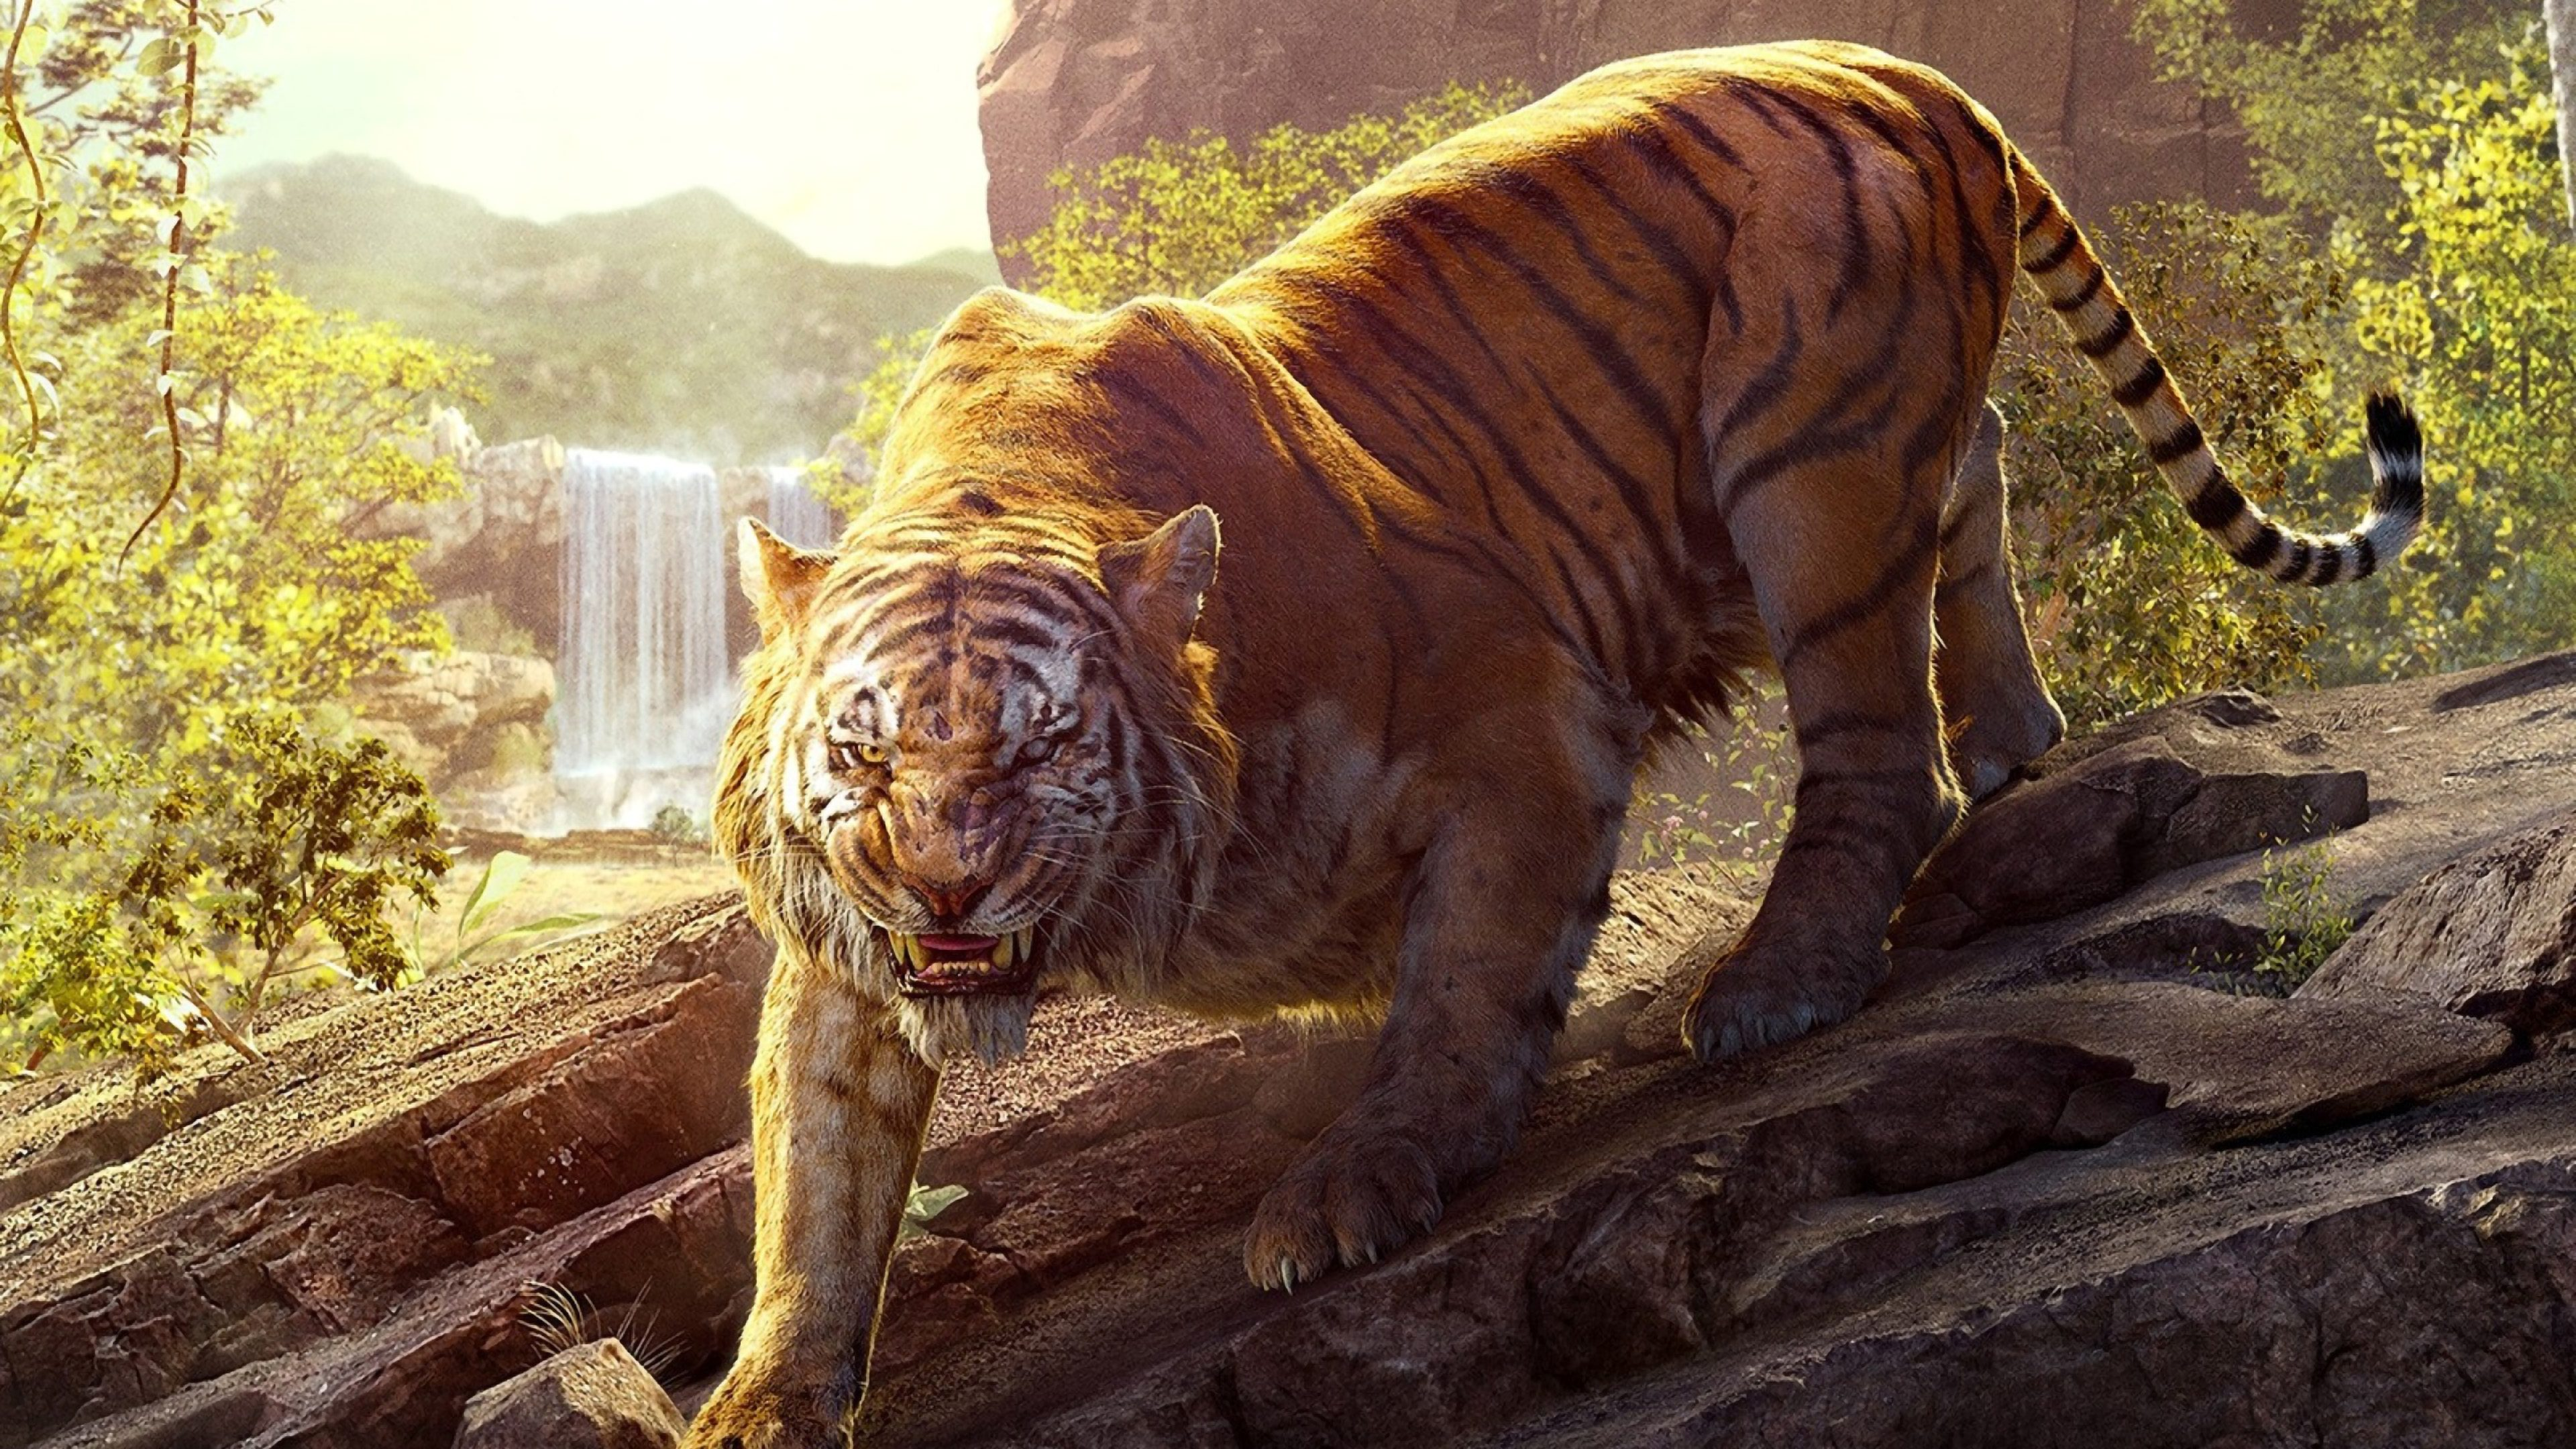 The Jungle Book Shere Khan Tiger 4k Wallpaper Best Wallpapers